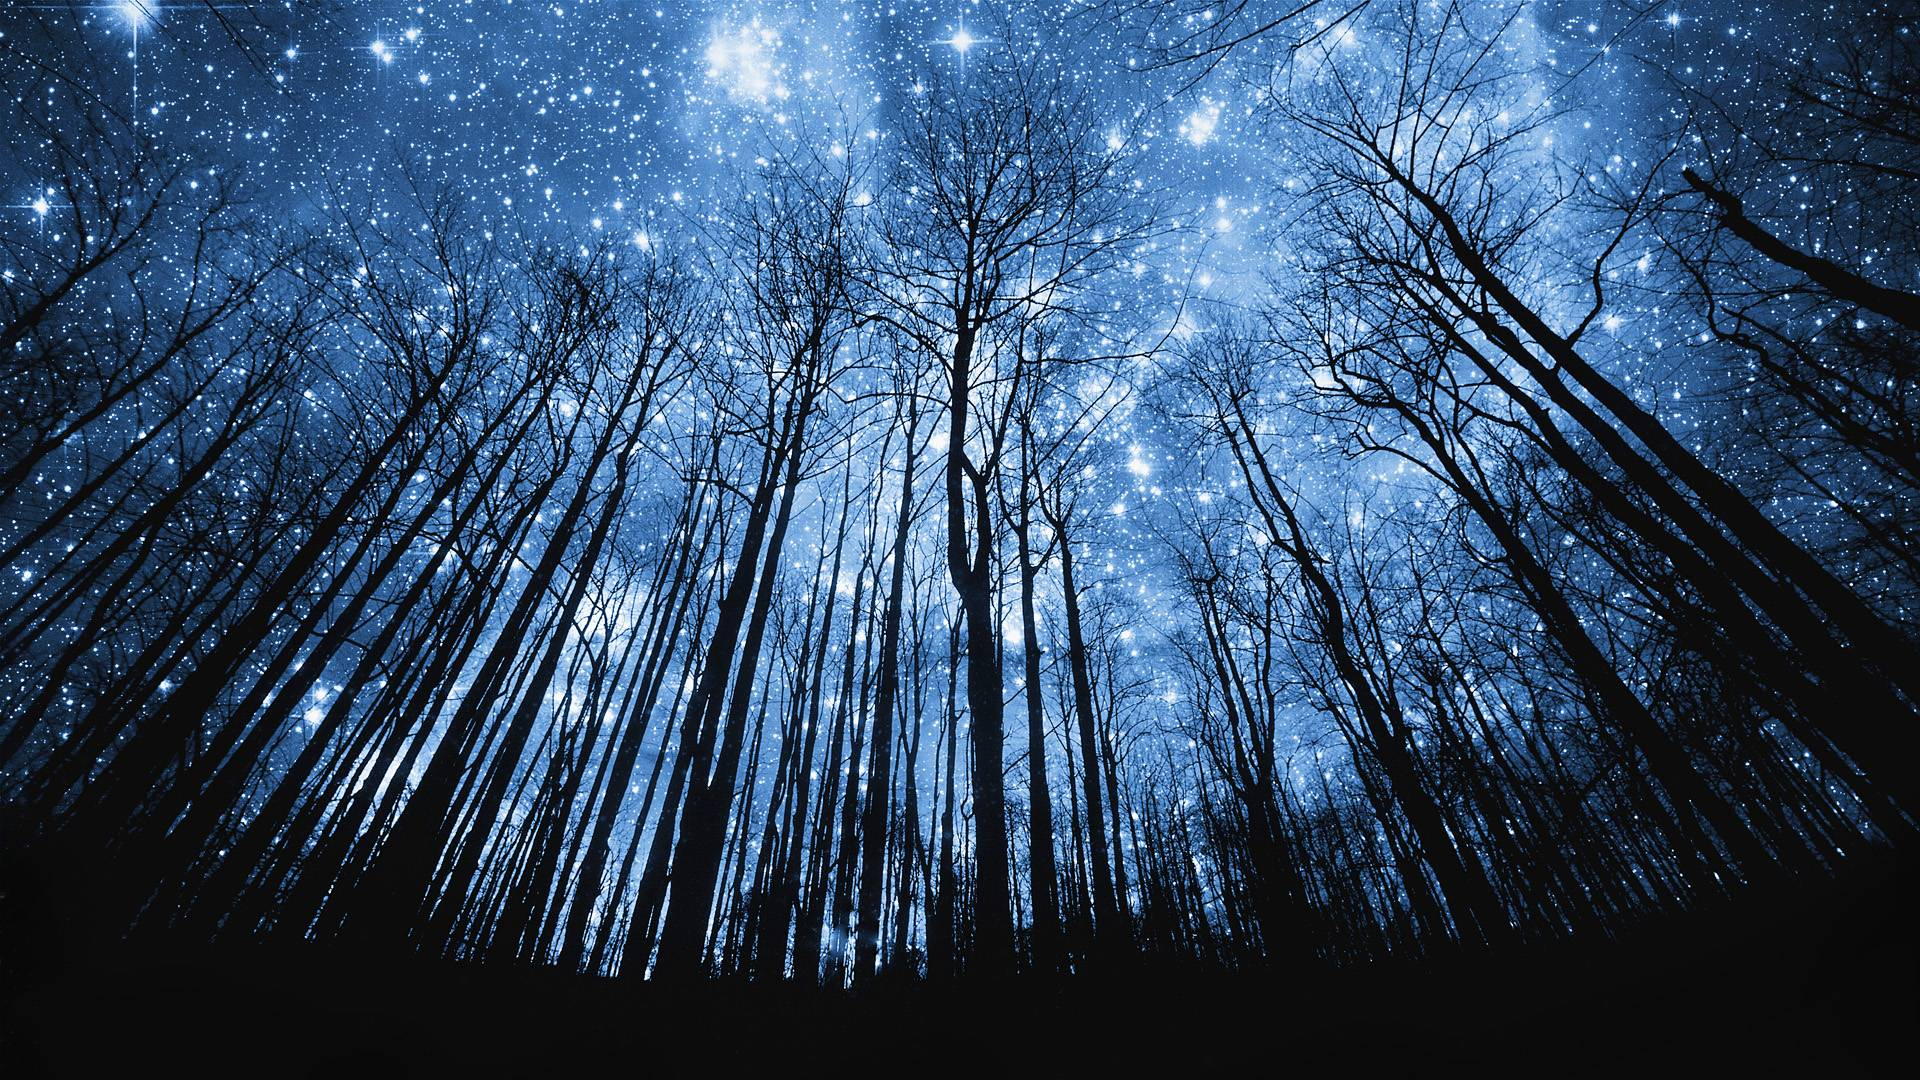 Starry Night Sky Wallpapers - Wallpaper Cave: http://wallpapercave.com/starry-night-sky-wallpaper